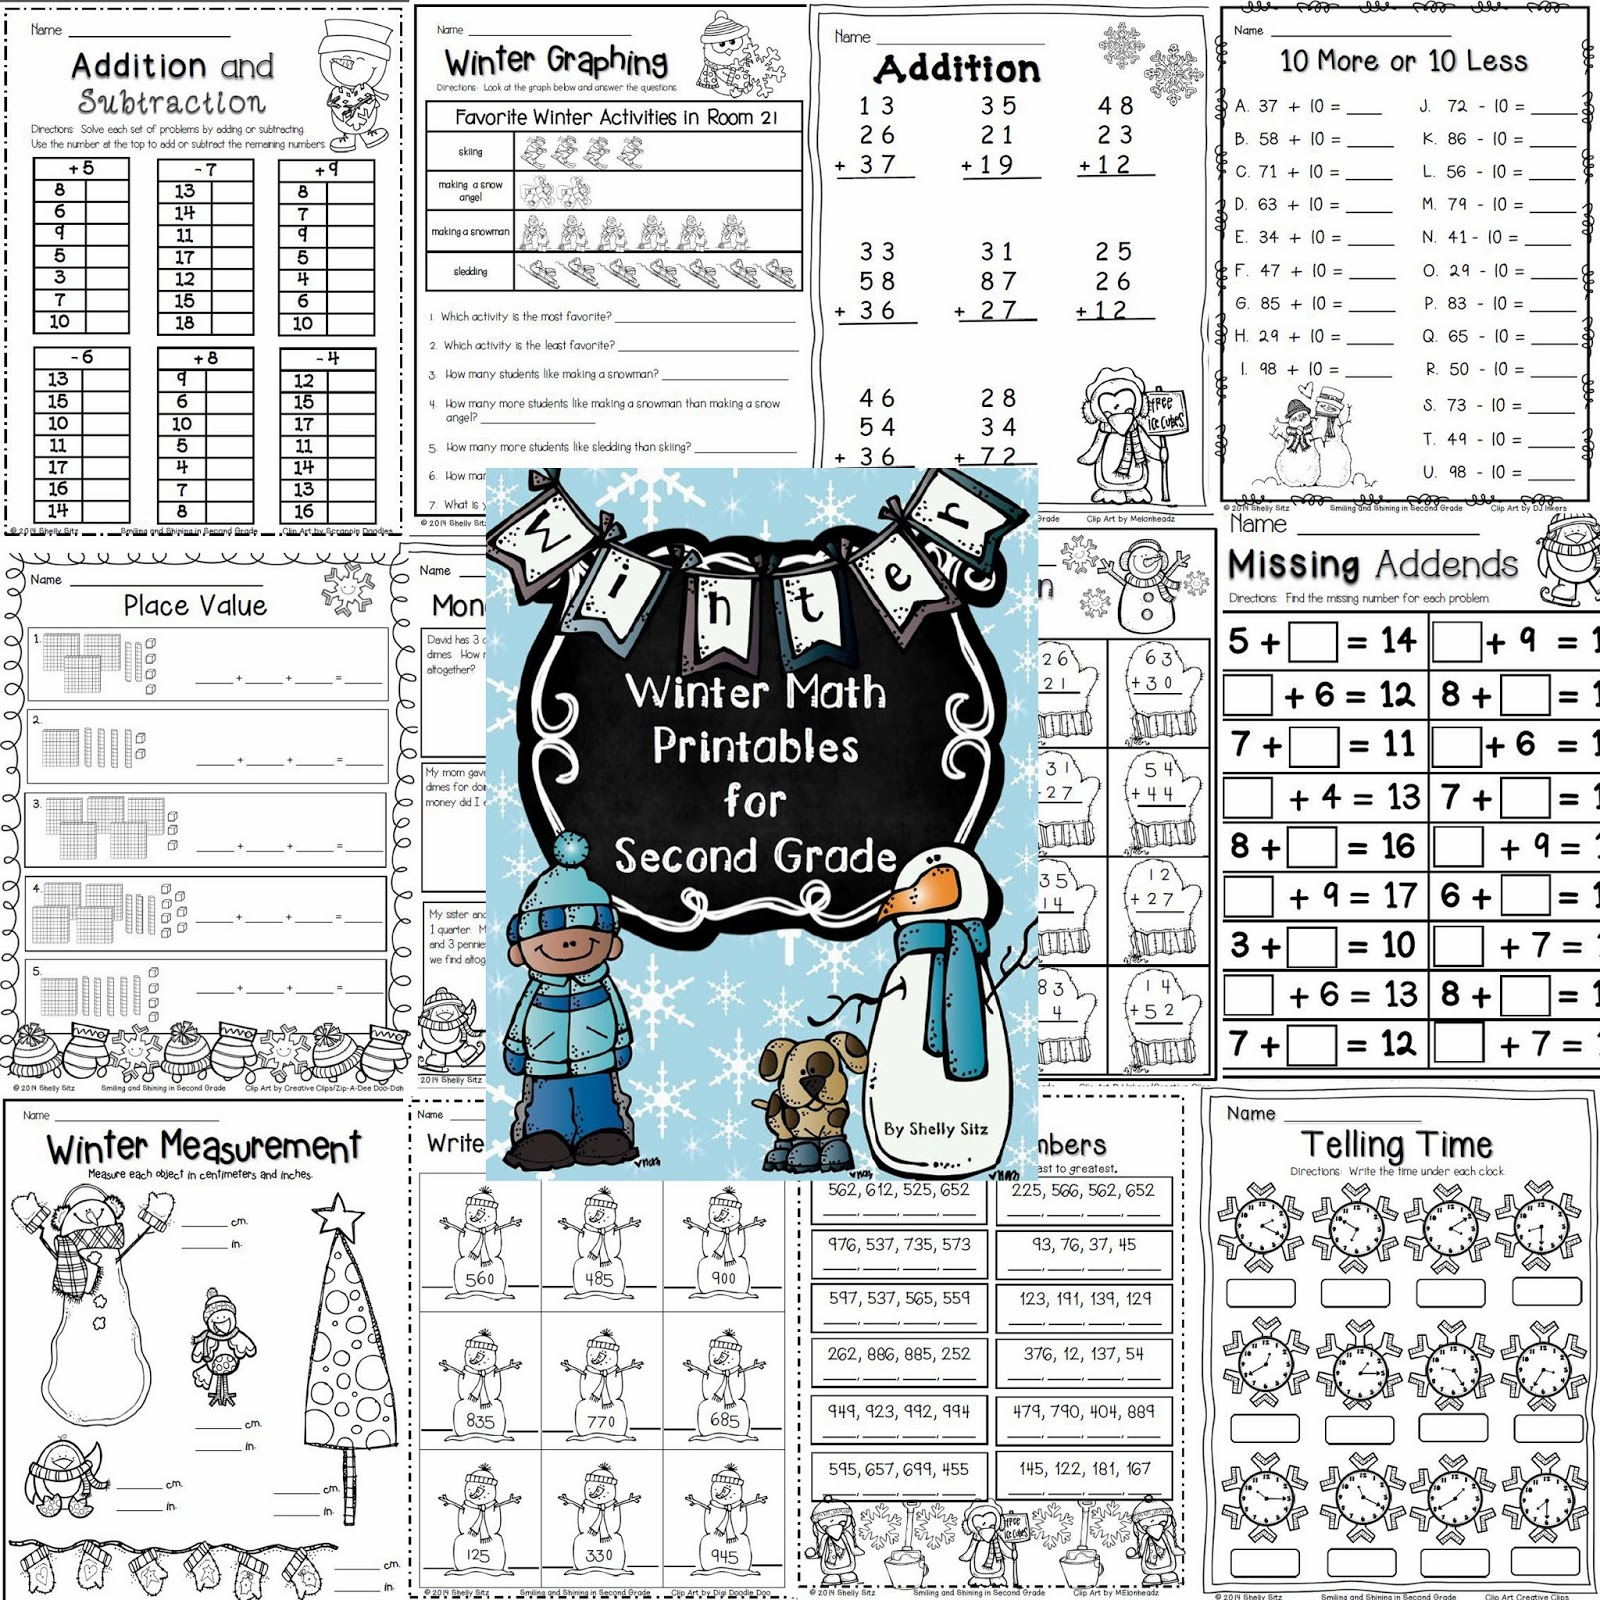 smiling and shining in second grade winter math printables. Black Bedroom Furniture Sets. Home Design Ideas